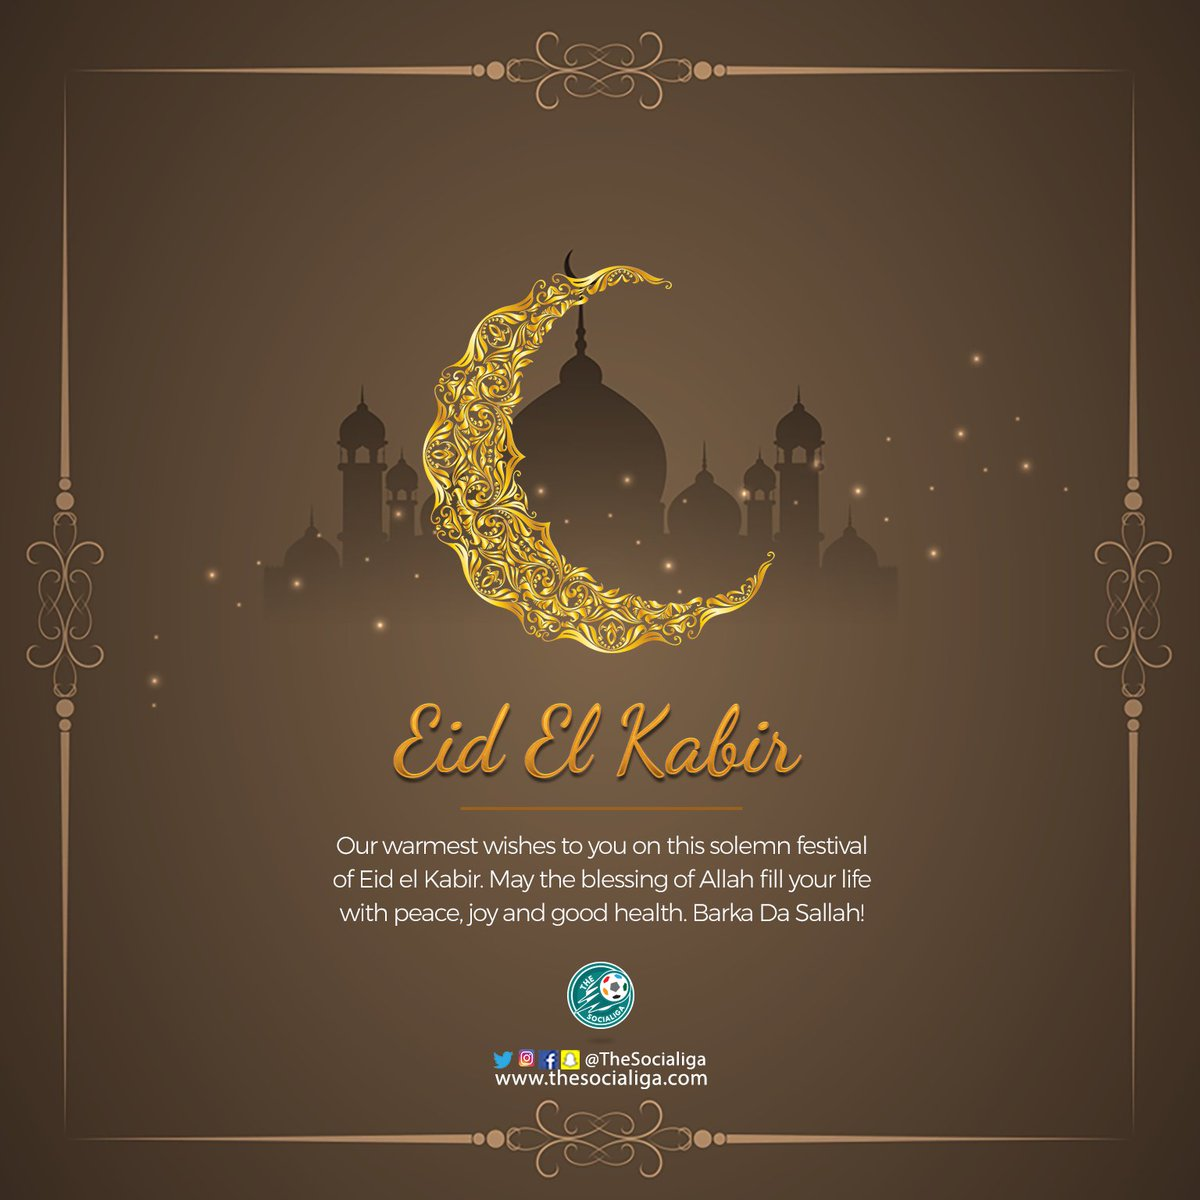 Eid el kabir greetings thesocialiga the socialigas tweet eid el kabir greetings to all our muslims friends partners and followers we wish you a peaceful and joyous sallah celebration with your loved ones m4hsunfo